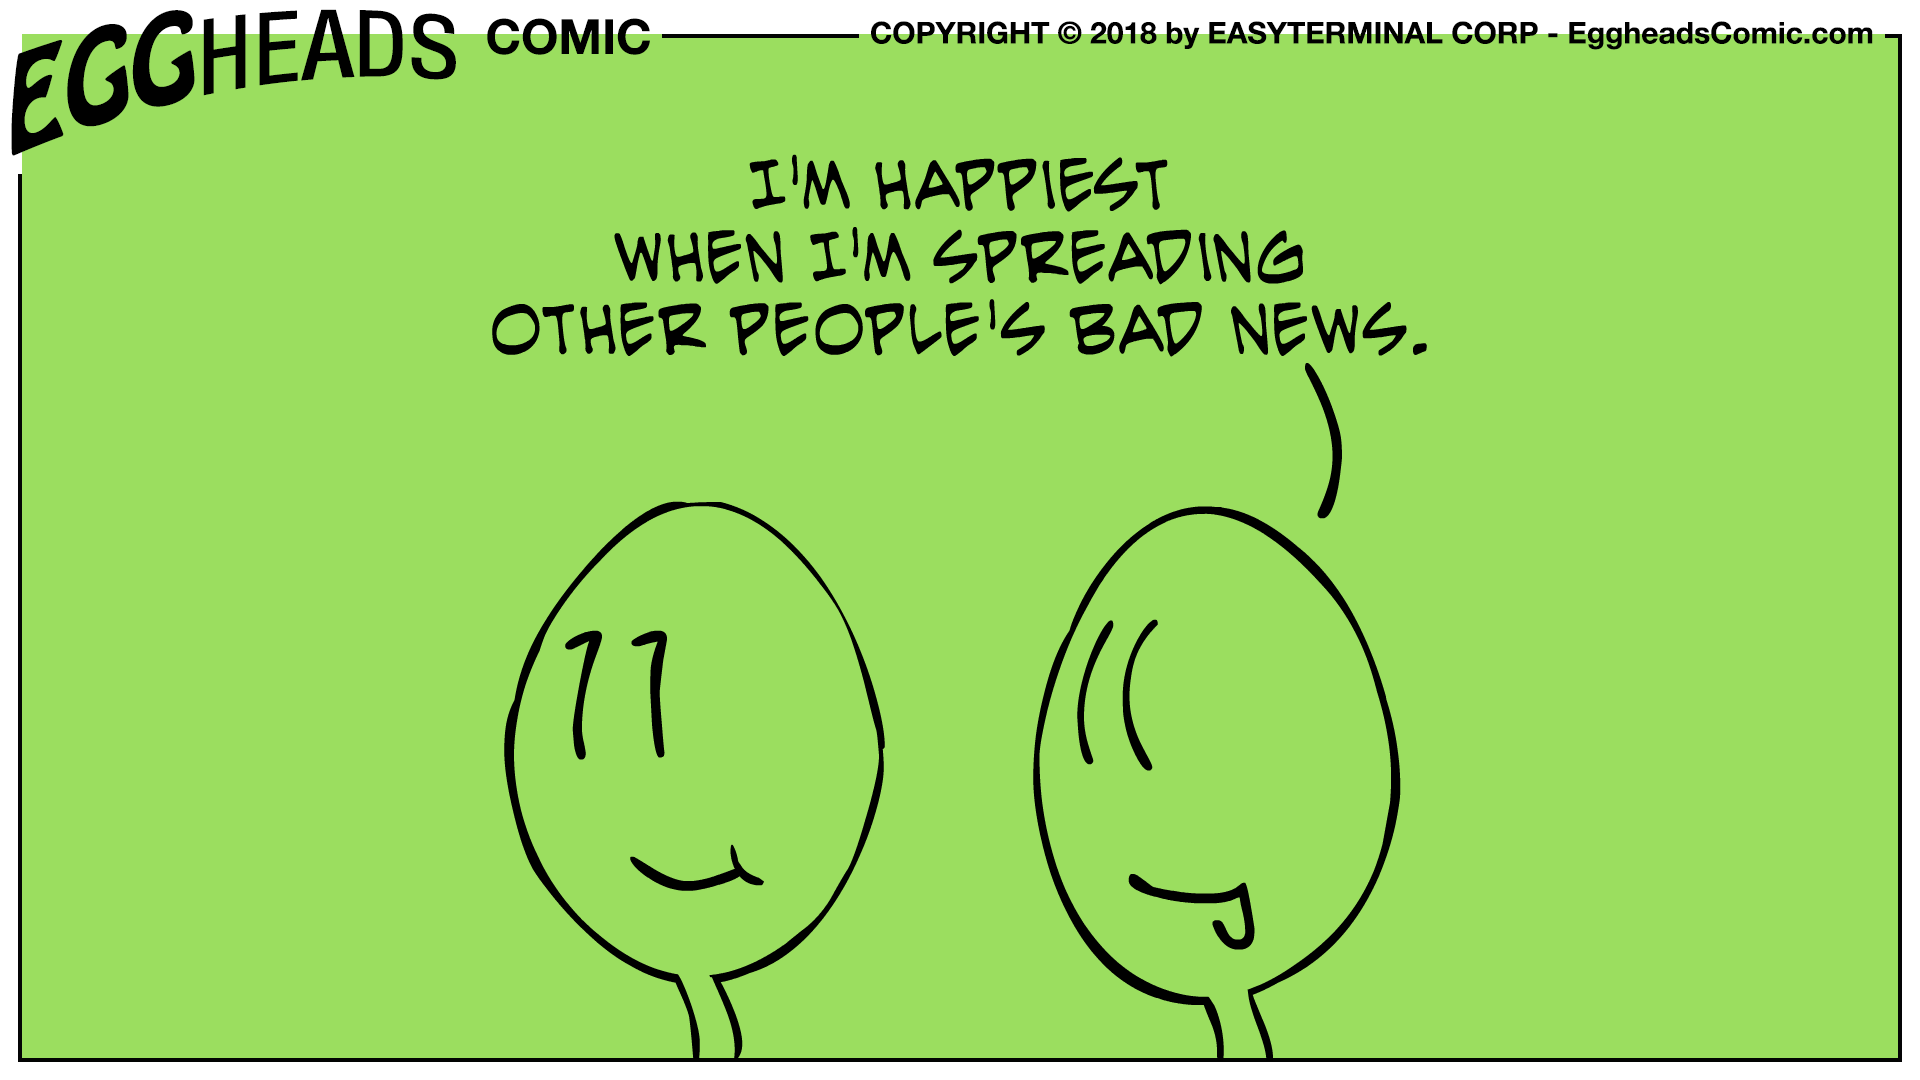 Webcomic Eggheads Comic Strip 089 Happiest When